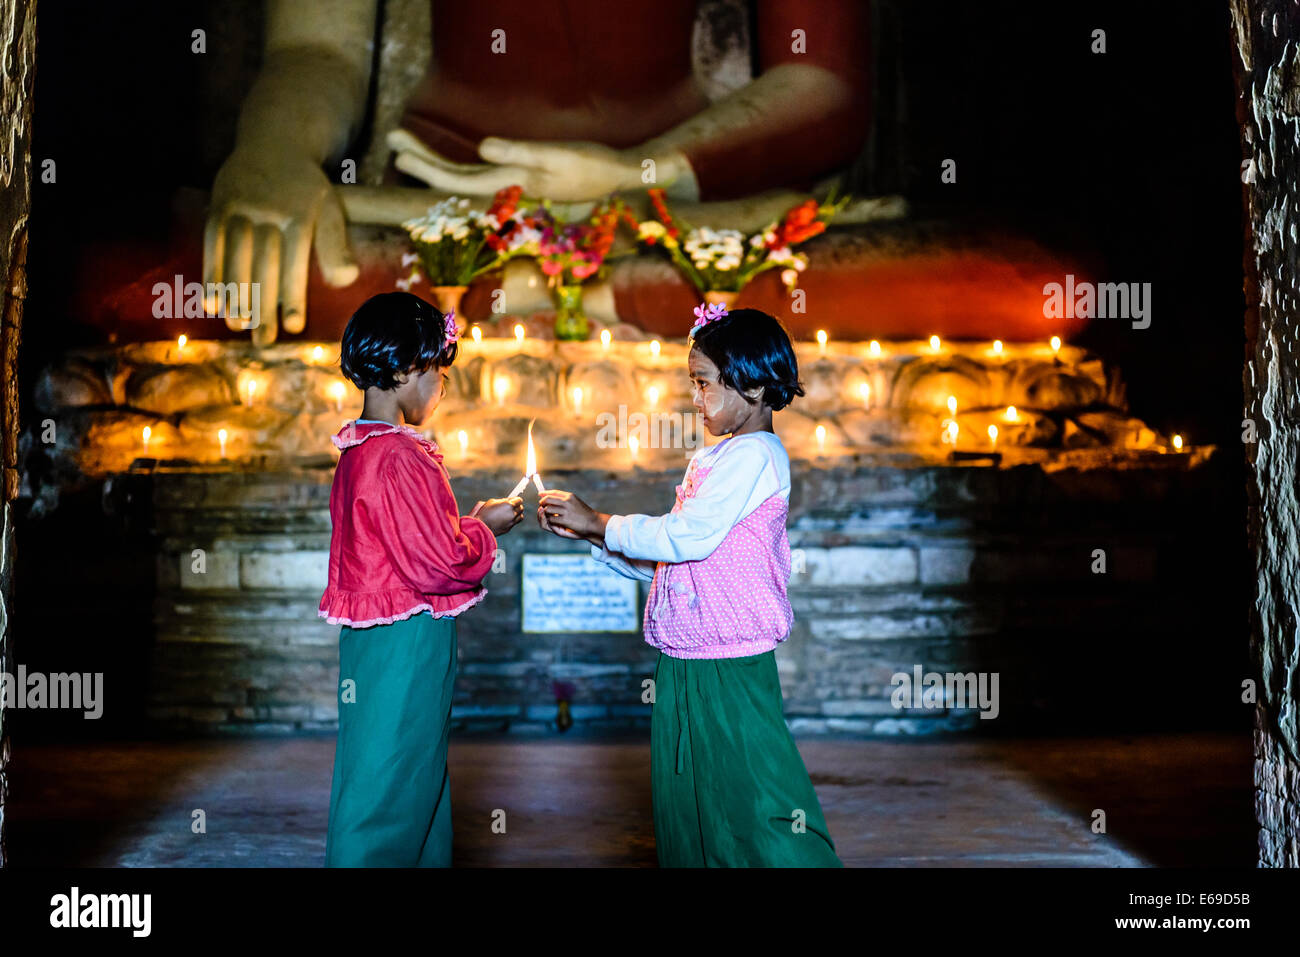 Asian girls lighting candles in Buddhist temple - Stock Image